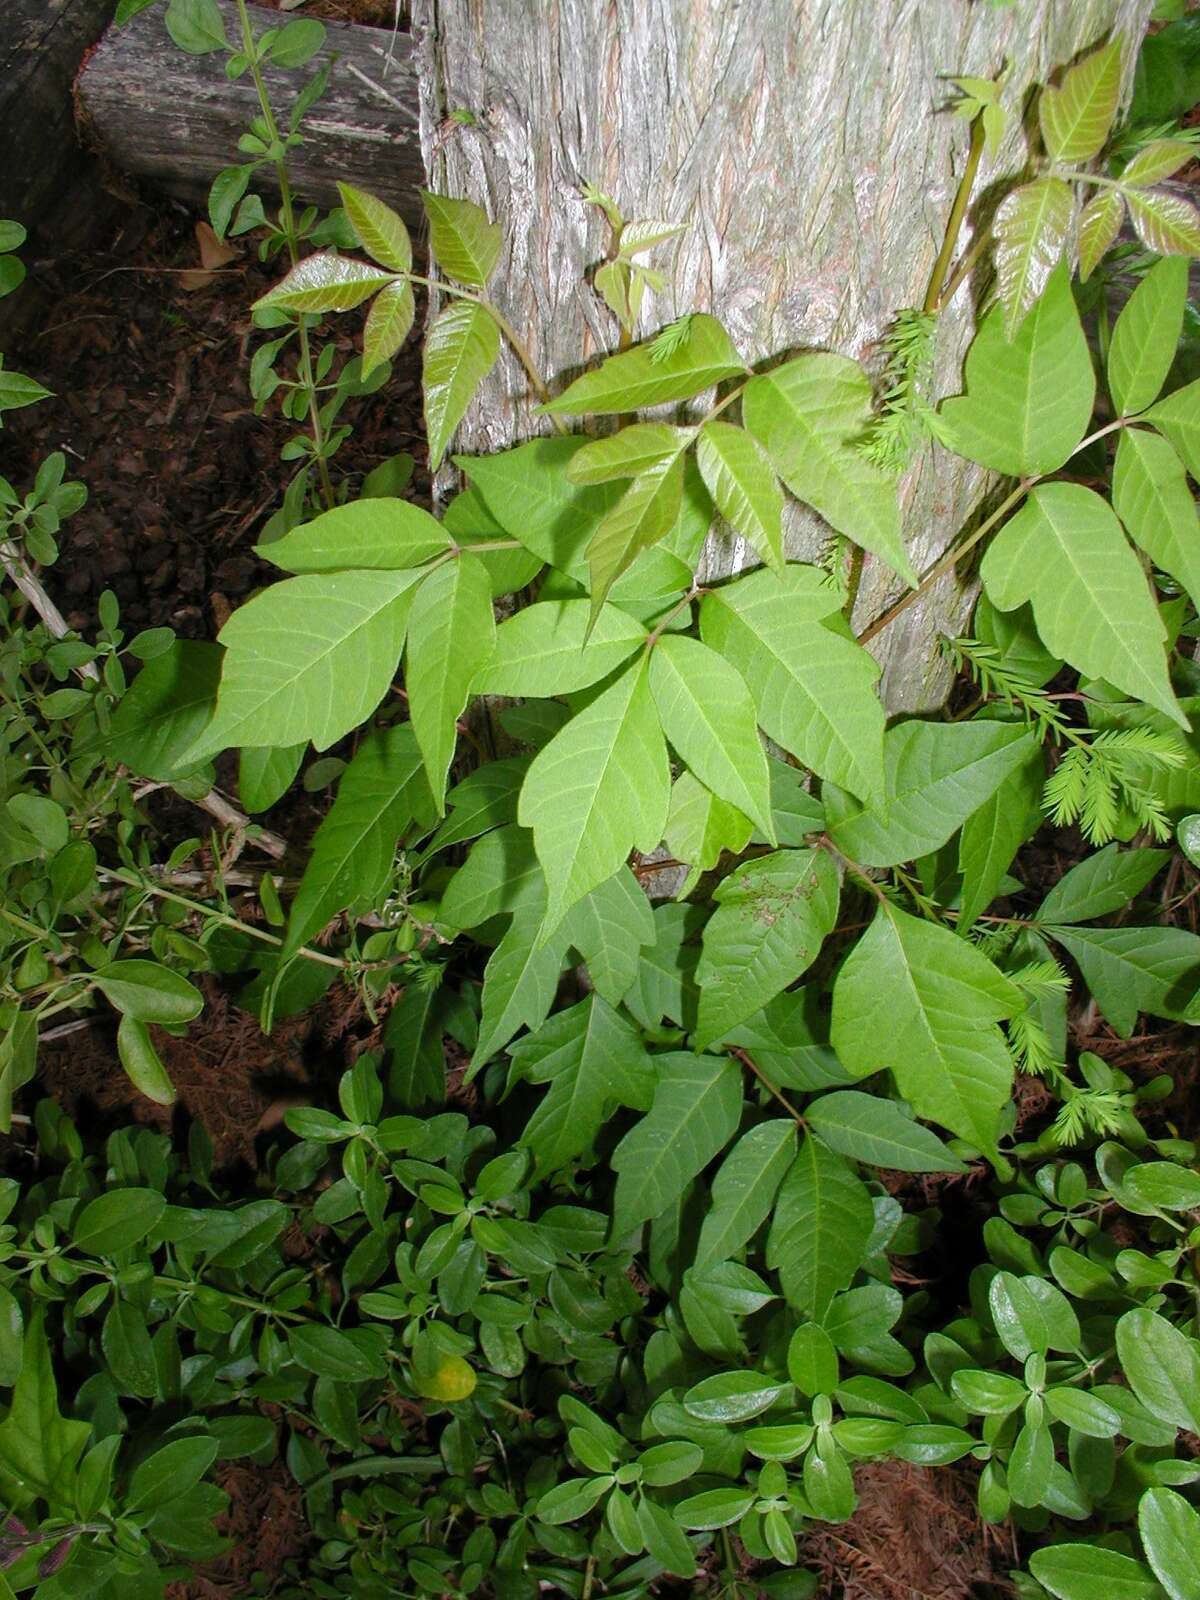 Poison Ivy can grow almost anywhere. Here it is seen growing up the trunk of a Bald Cypress tree in my yard.